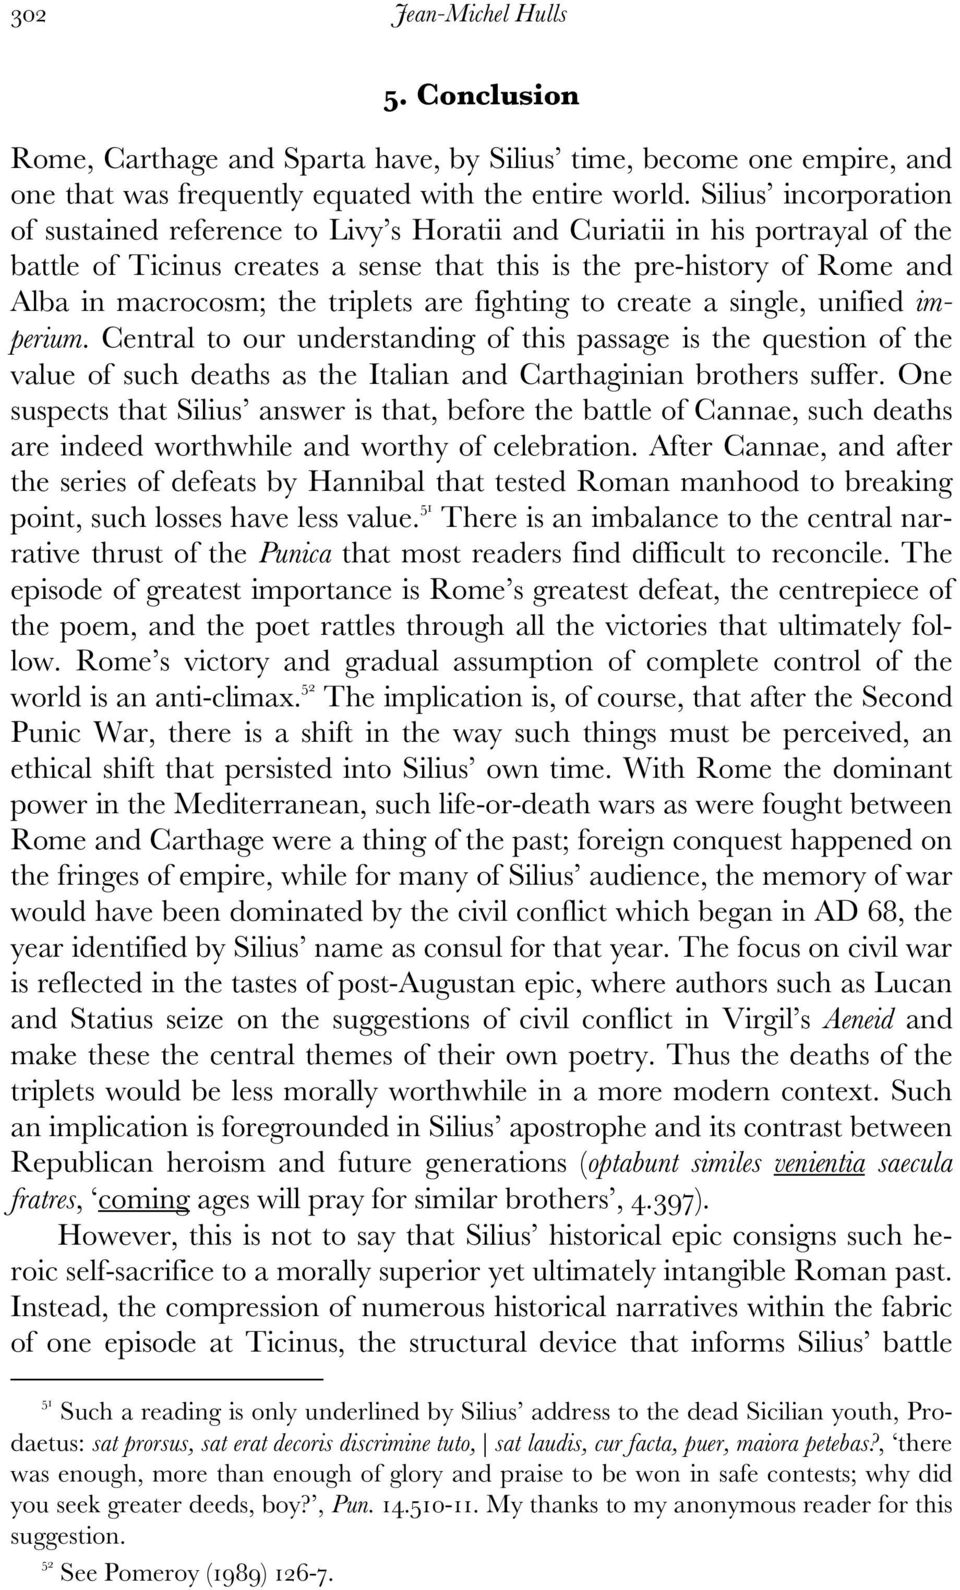 triplets are fighting to create a single, unified imperium. Central to our understanding of this passage is the question of the value of such deaths as the Italian and Carthaginian brothers suffer.